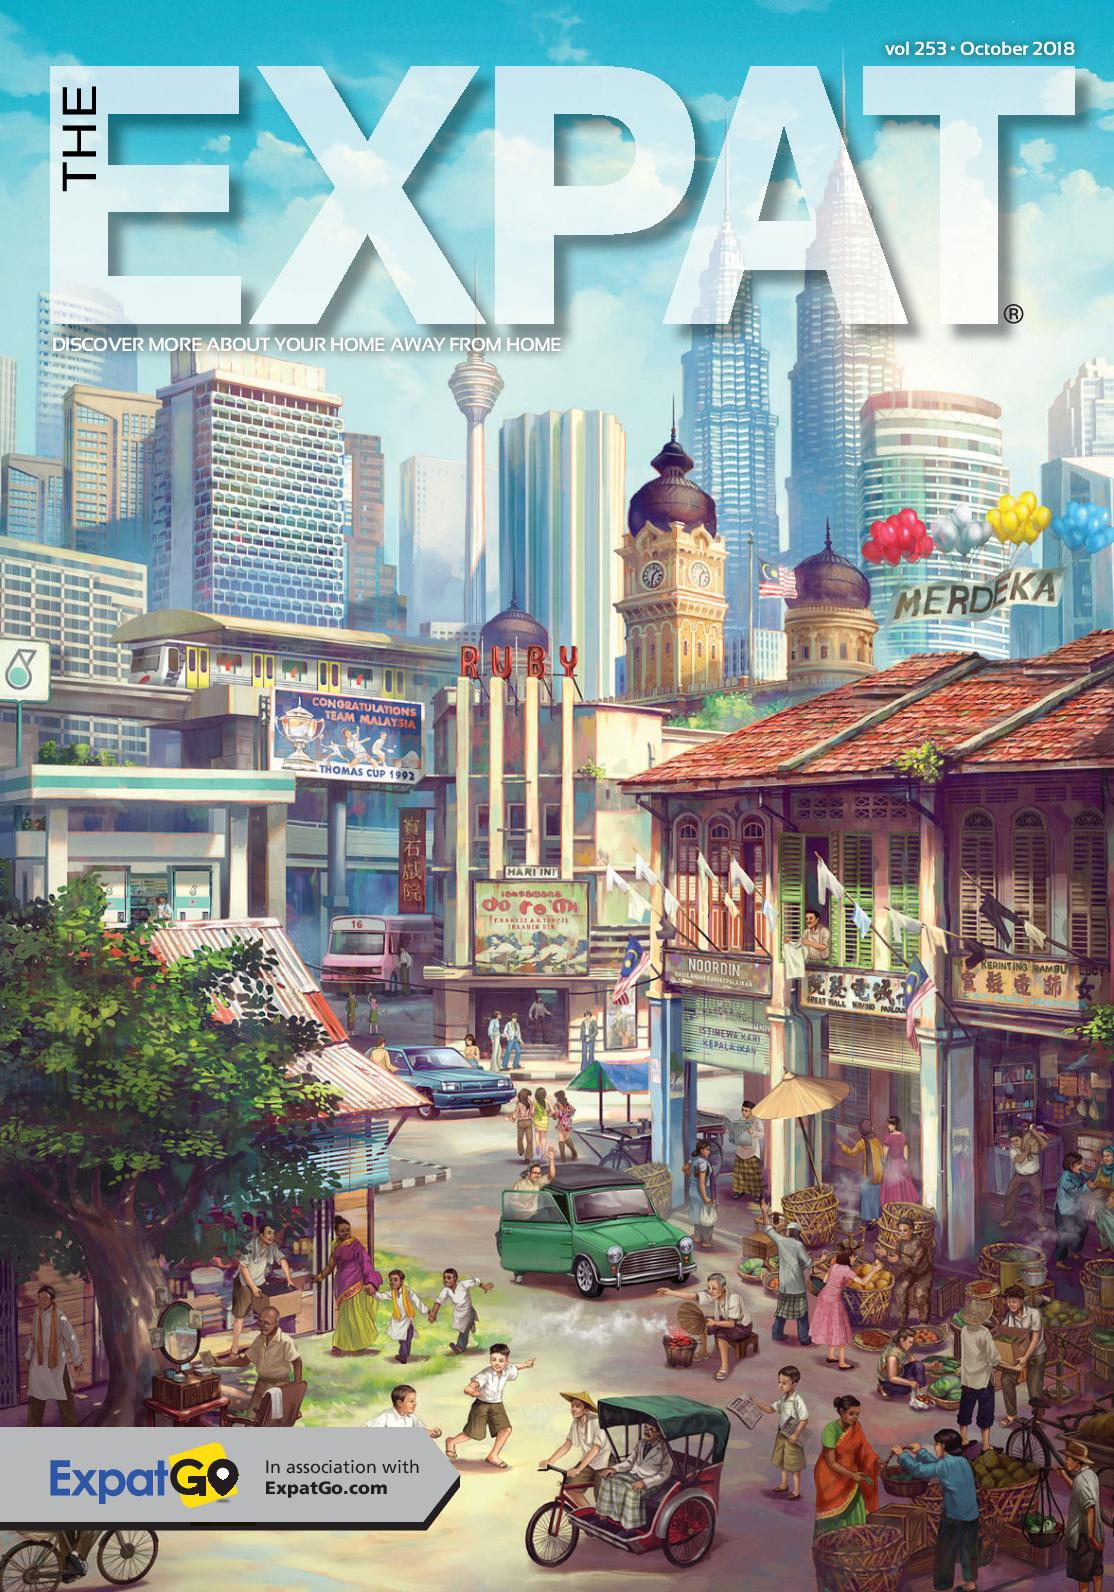 Calameo The Expat October 2018